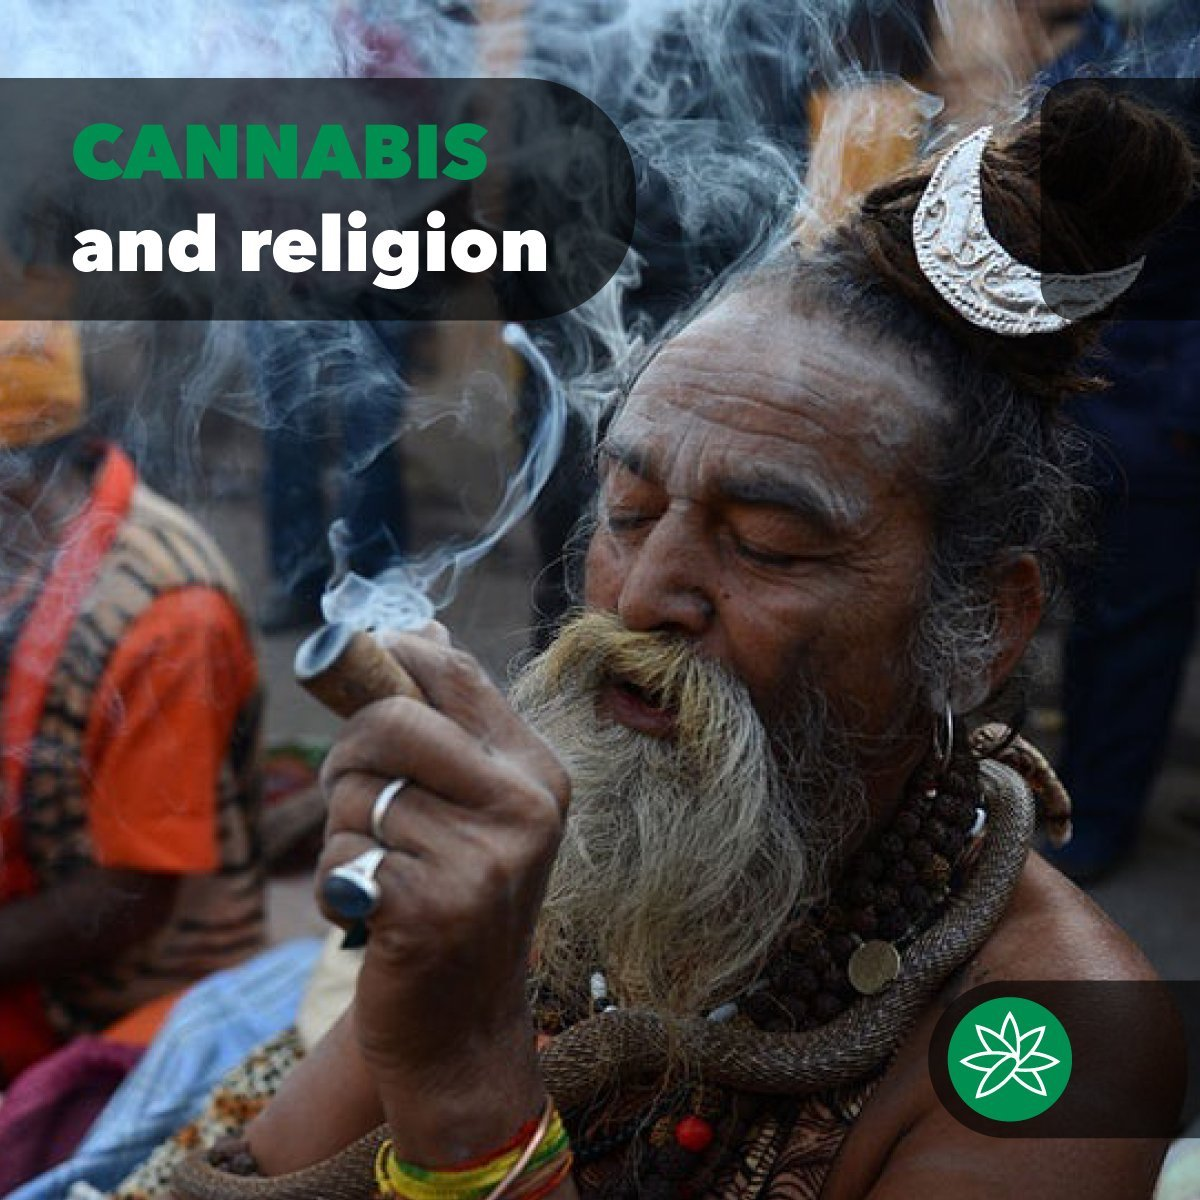 Cannabis and religion